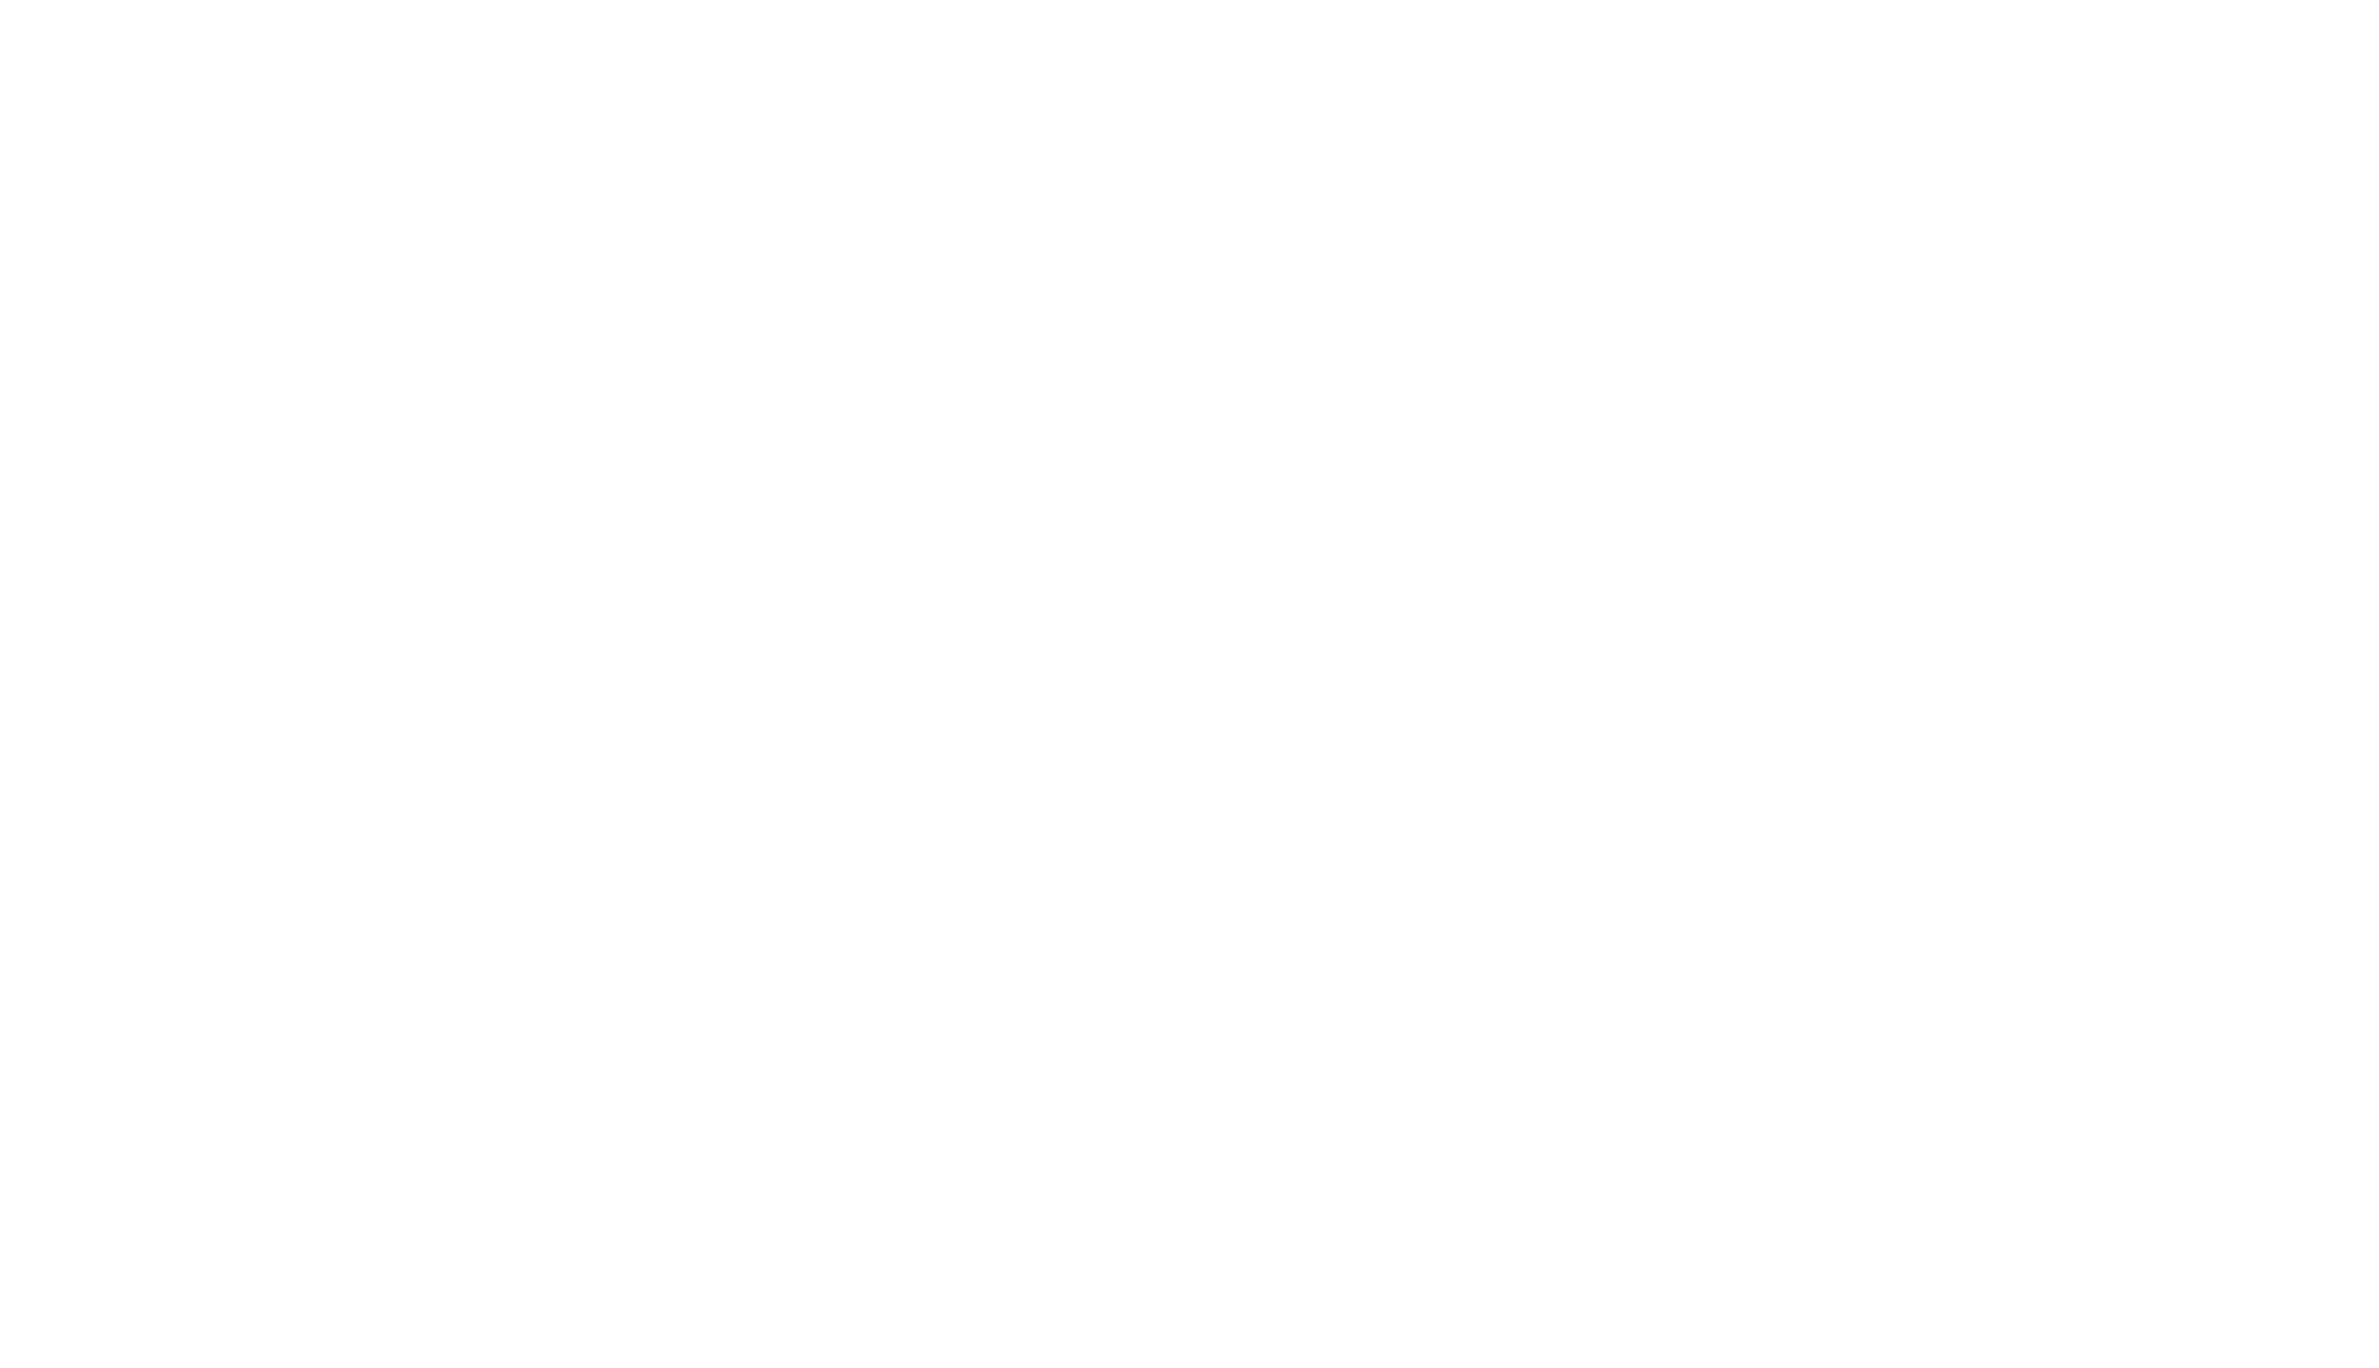 Future Ready Collier White Logo | Future Ready Collier - Naples, Florida